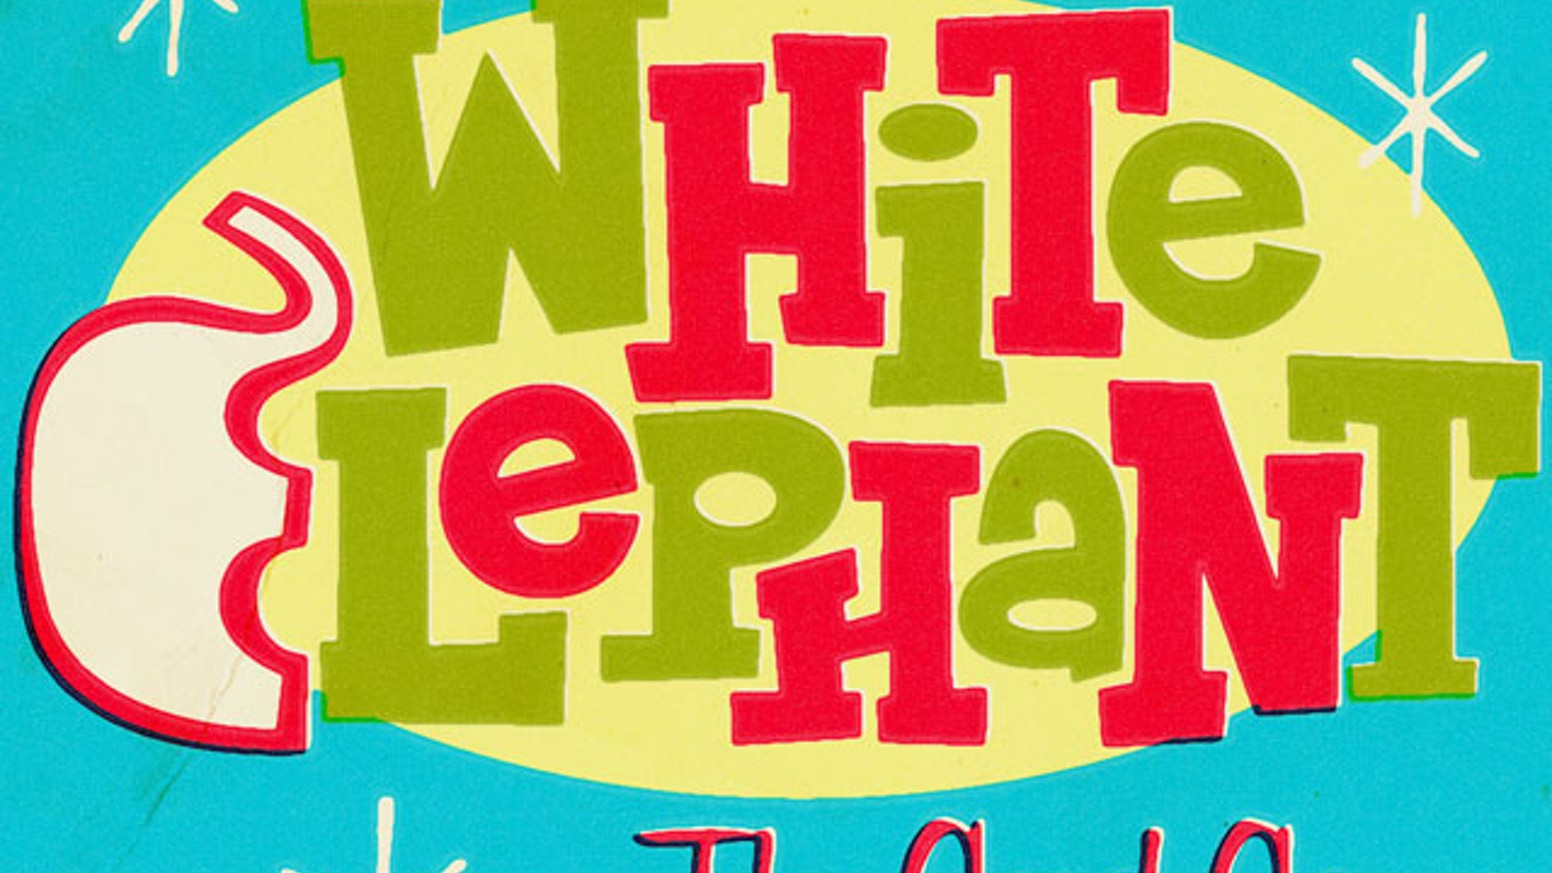 White elephant card game by brian kelley kickstarter white elephant card game solutioingenieria Gallery